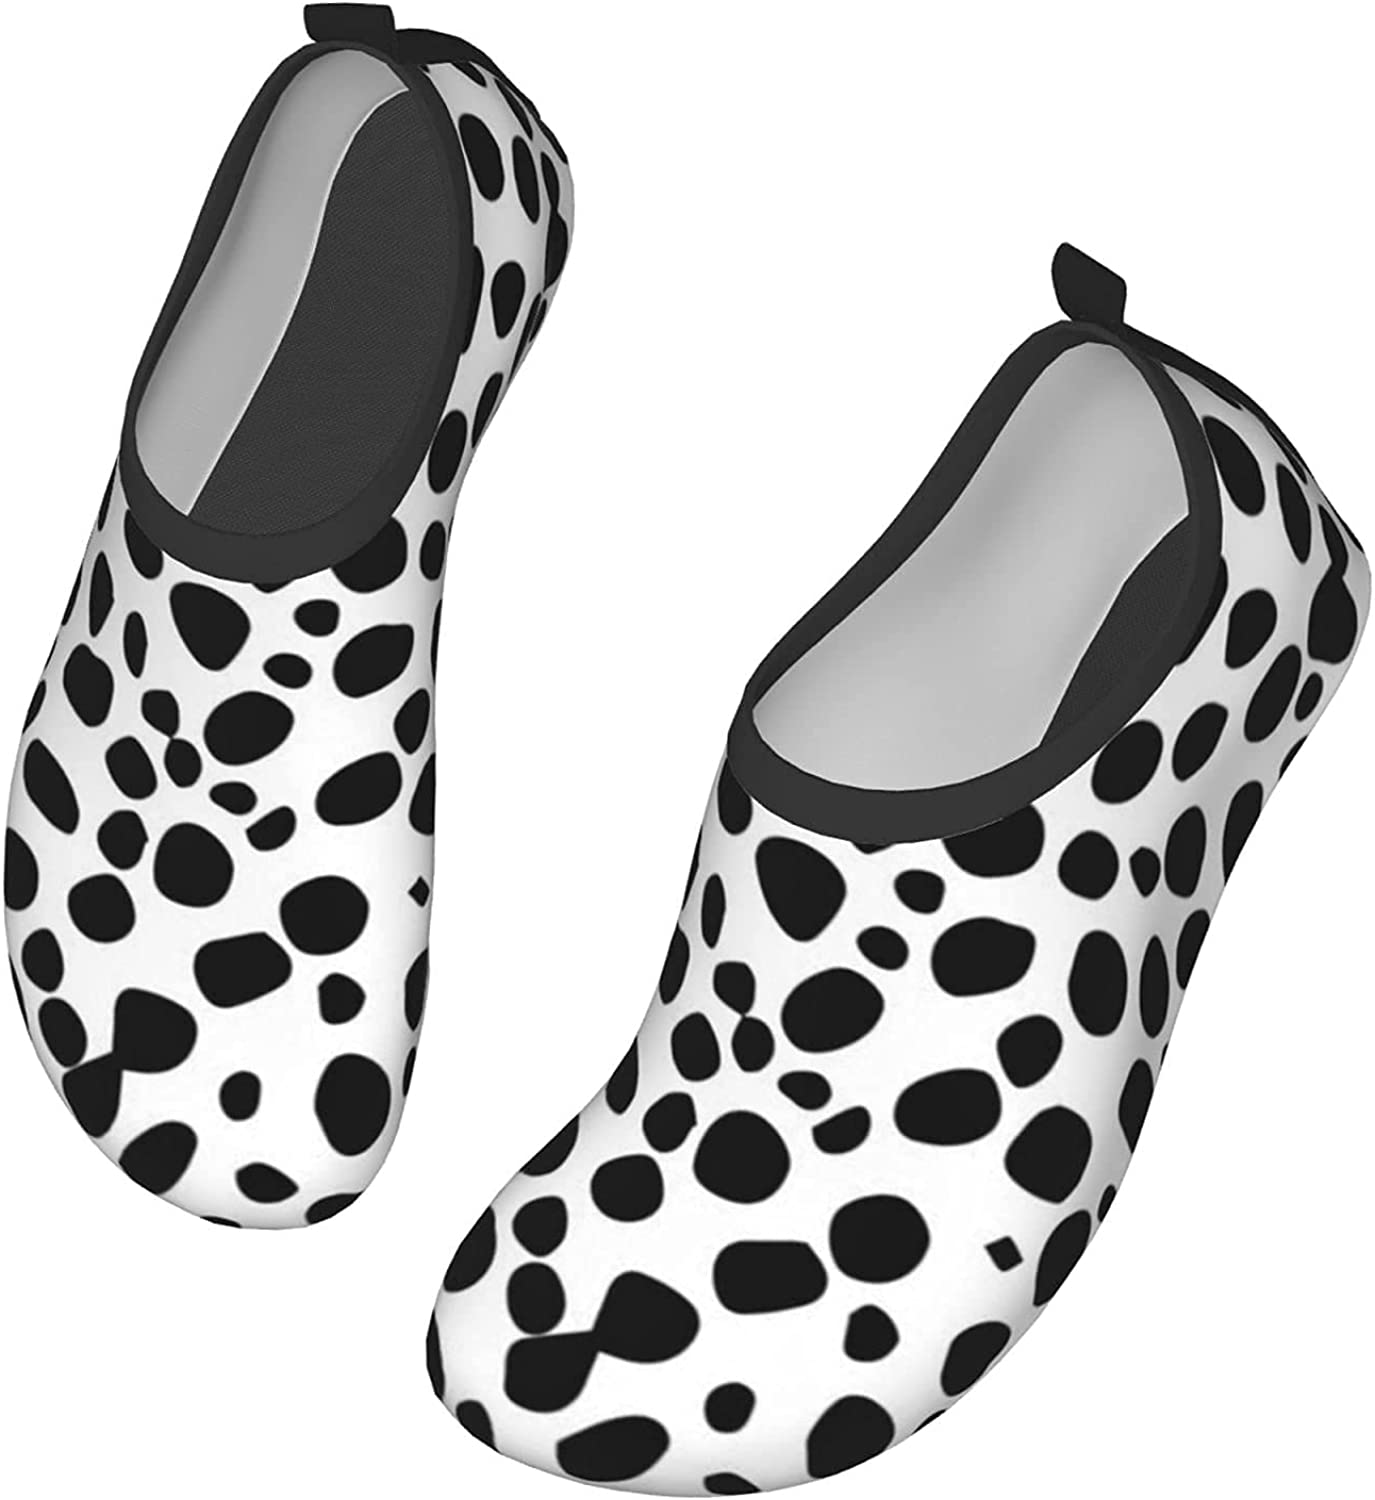 Black and White Background Dalmatian Background Texture Water Shoes Quick-Dry Socks Slip-on Aqua Shoes Women Sandals Barefoot Shoes Yoga Shoes Surfing Yoga Pool Beach Swim Exercise Accessories 38/39